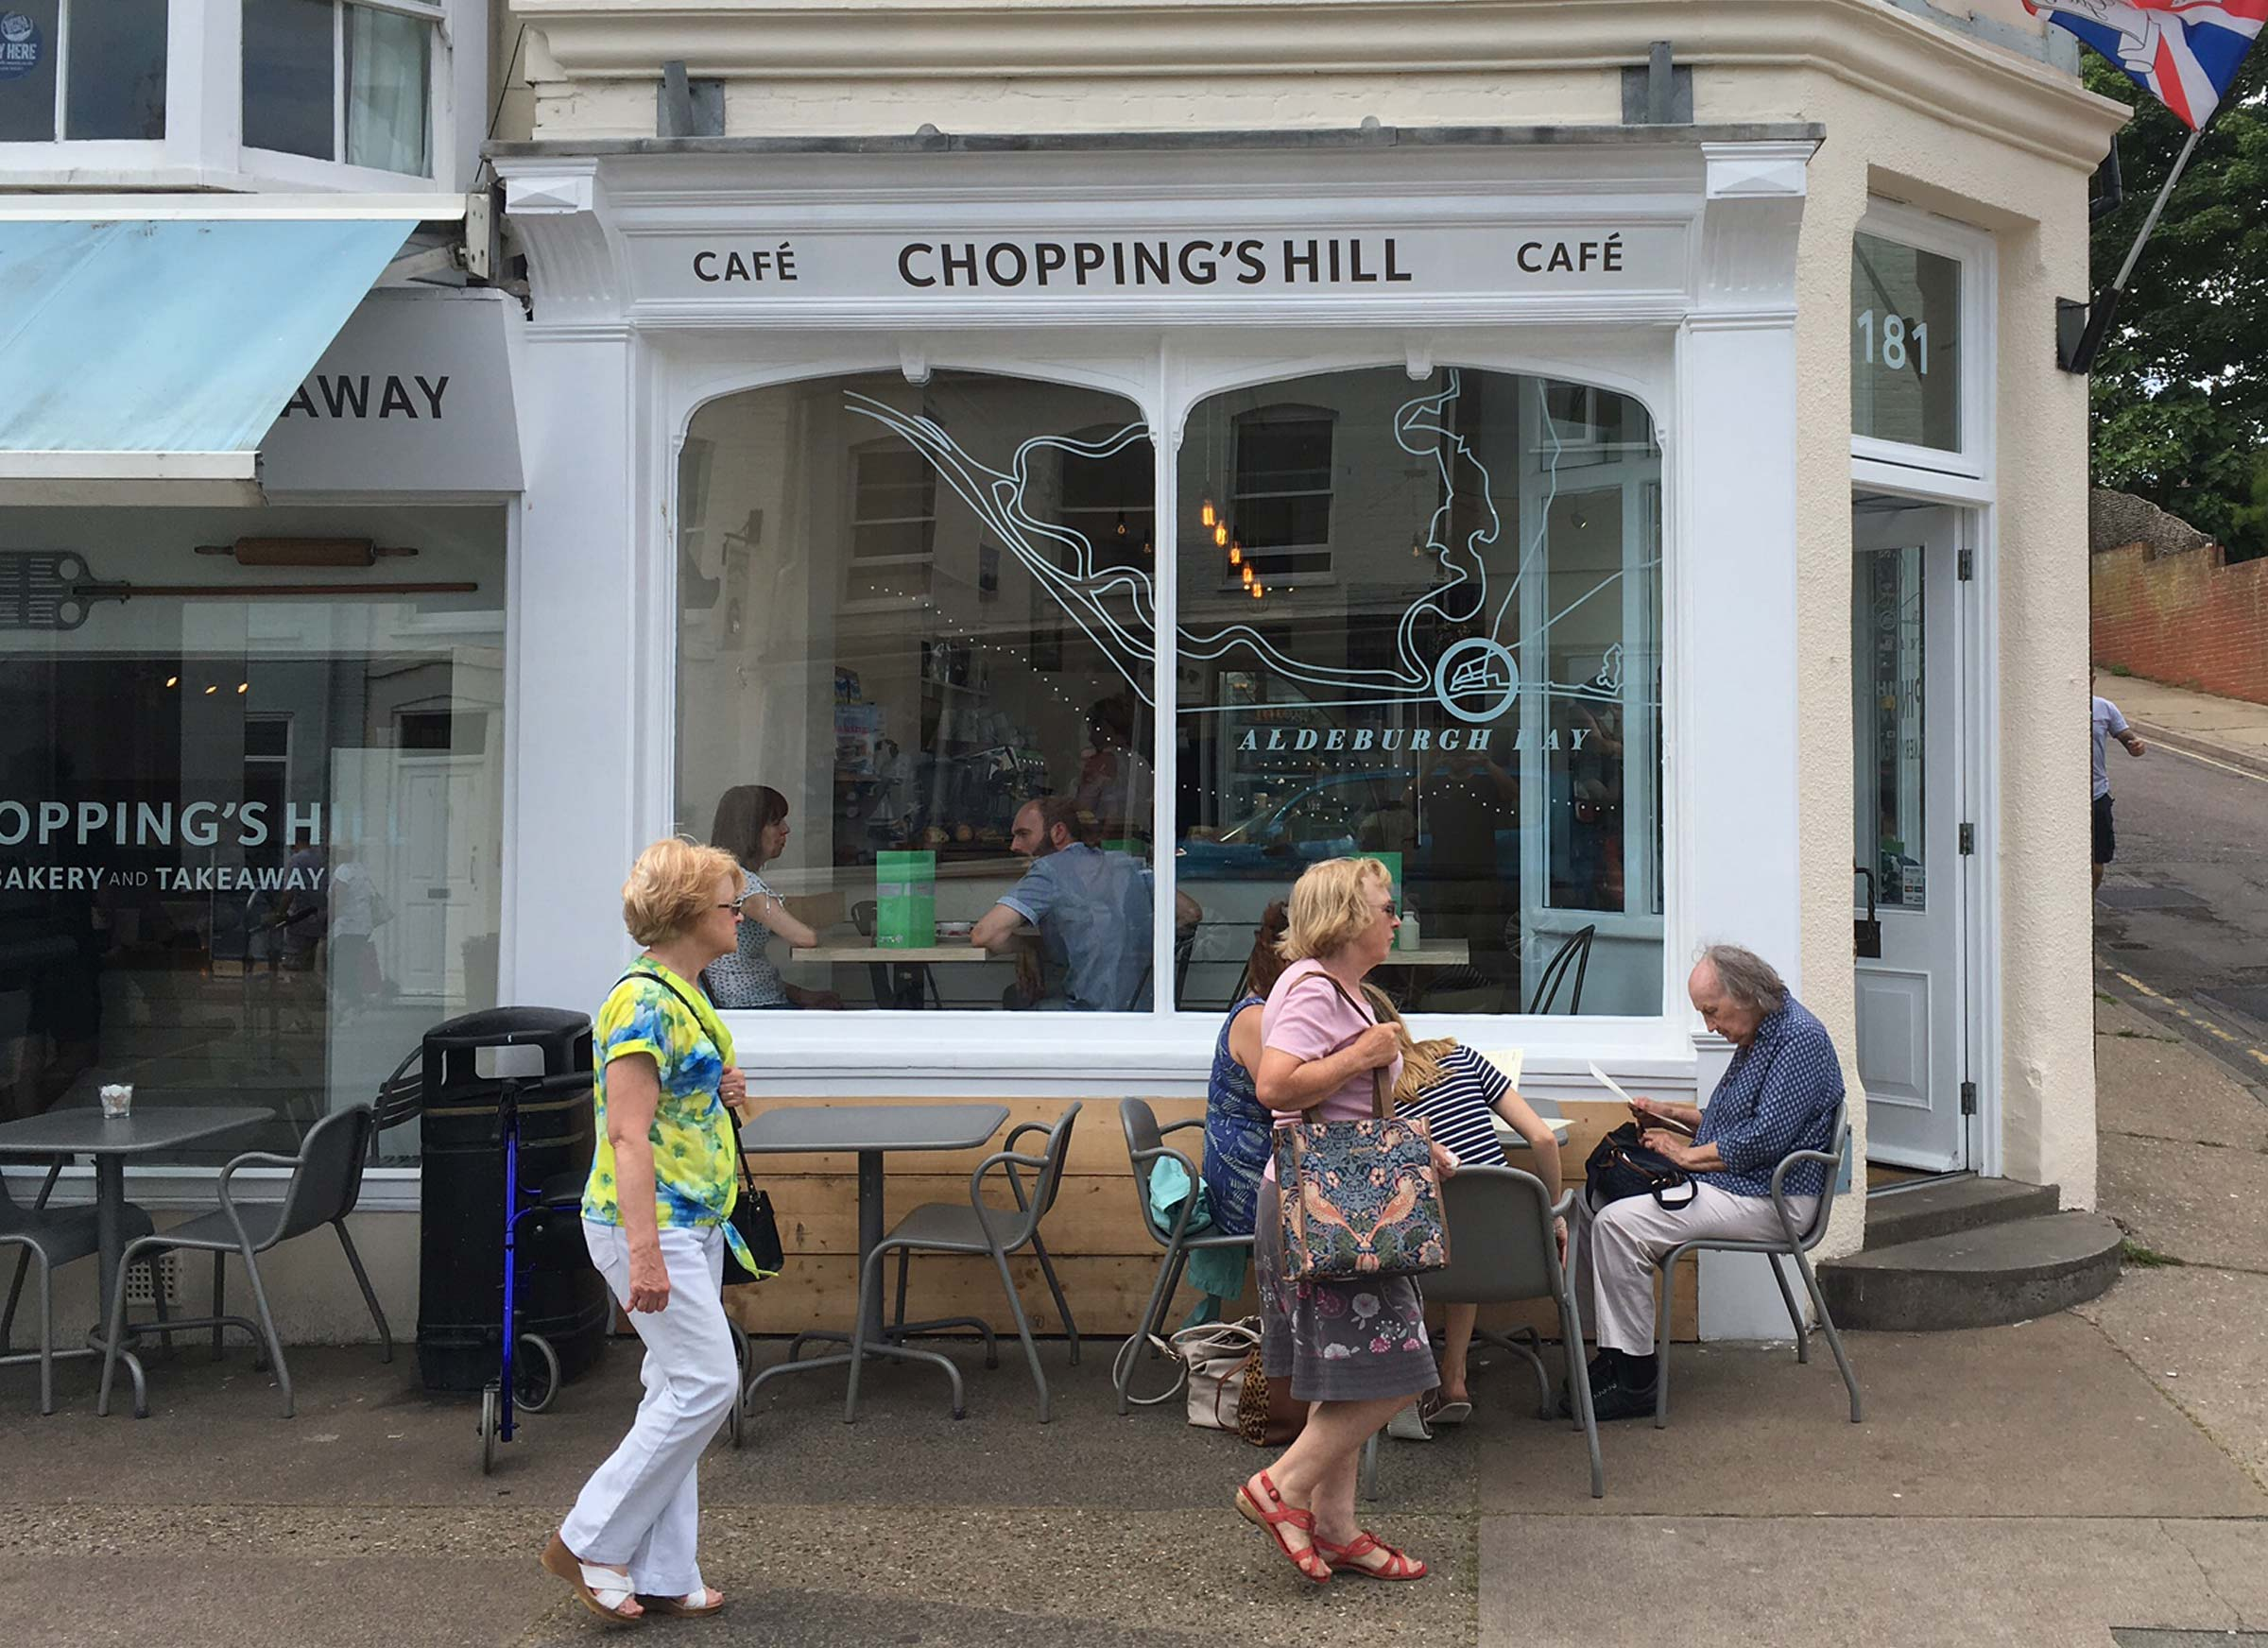 Chopping's Hill Café and Bakery